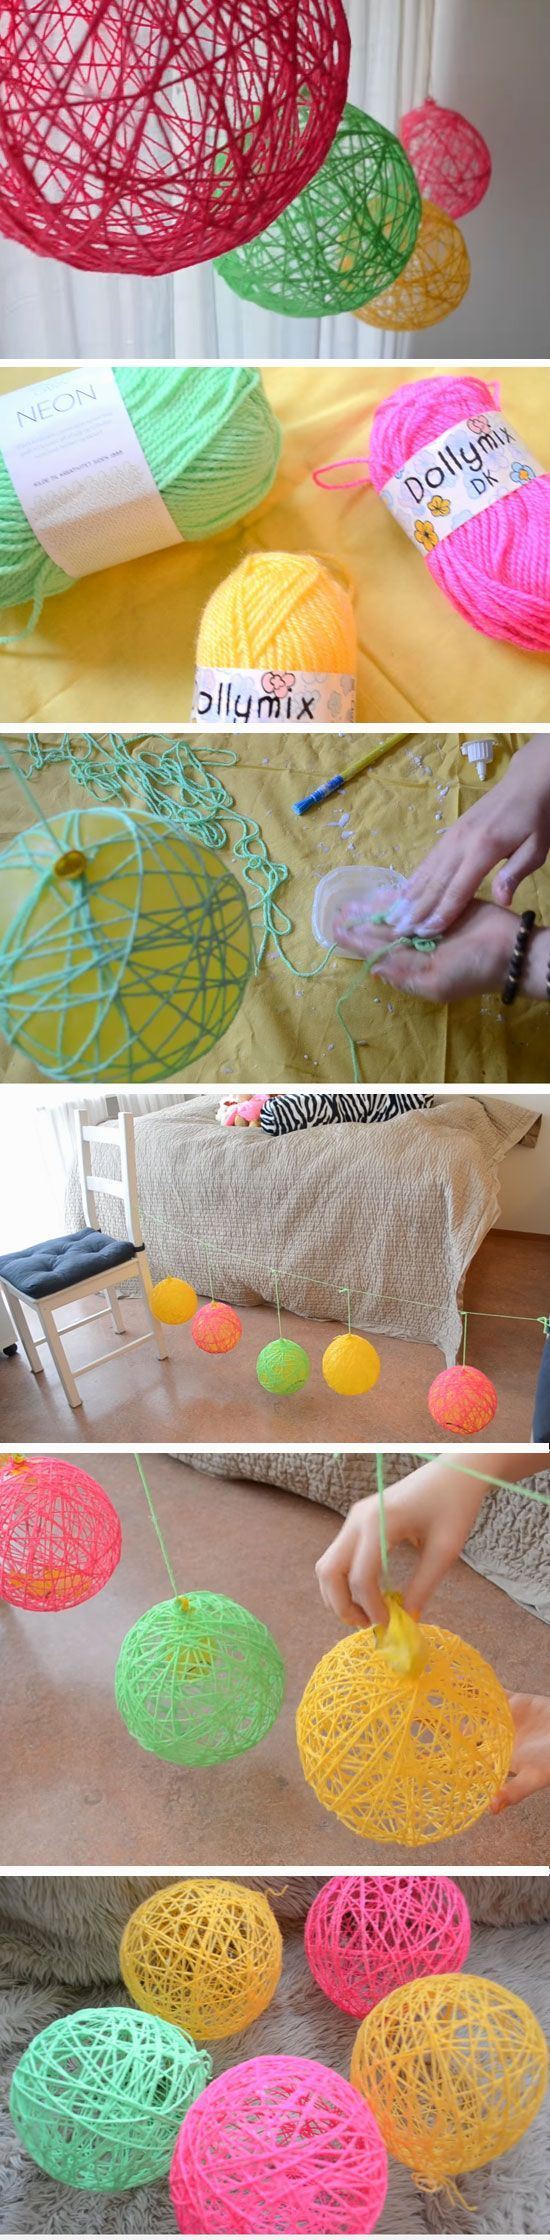 Charming Cool Easy Crafts For Your Room Part - 8: 18 Super Easy DIY Spring Room Decor Ideas